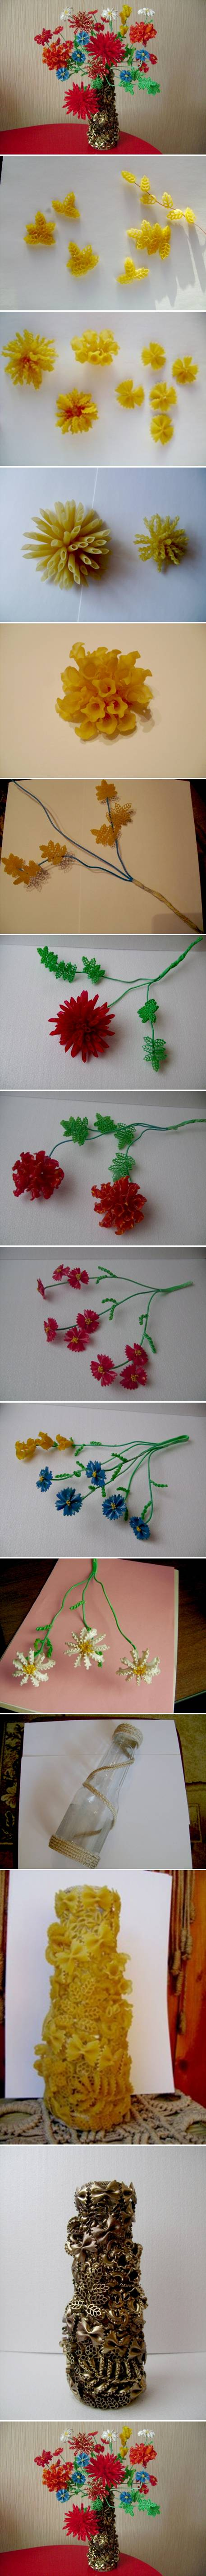 How to make beautiful Flowers and jar with pasta step by step DIY tutorial instructions